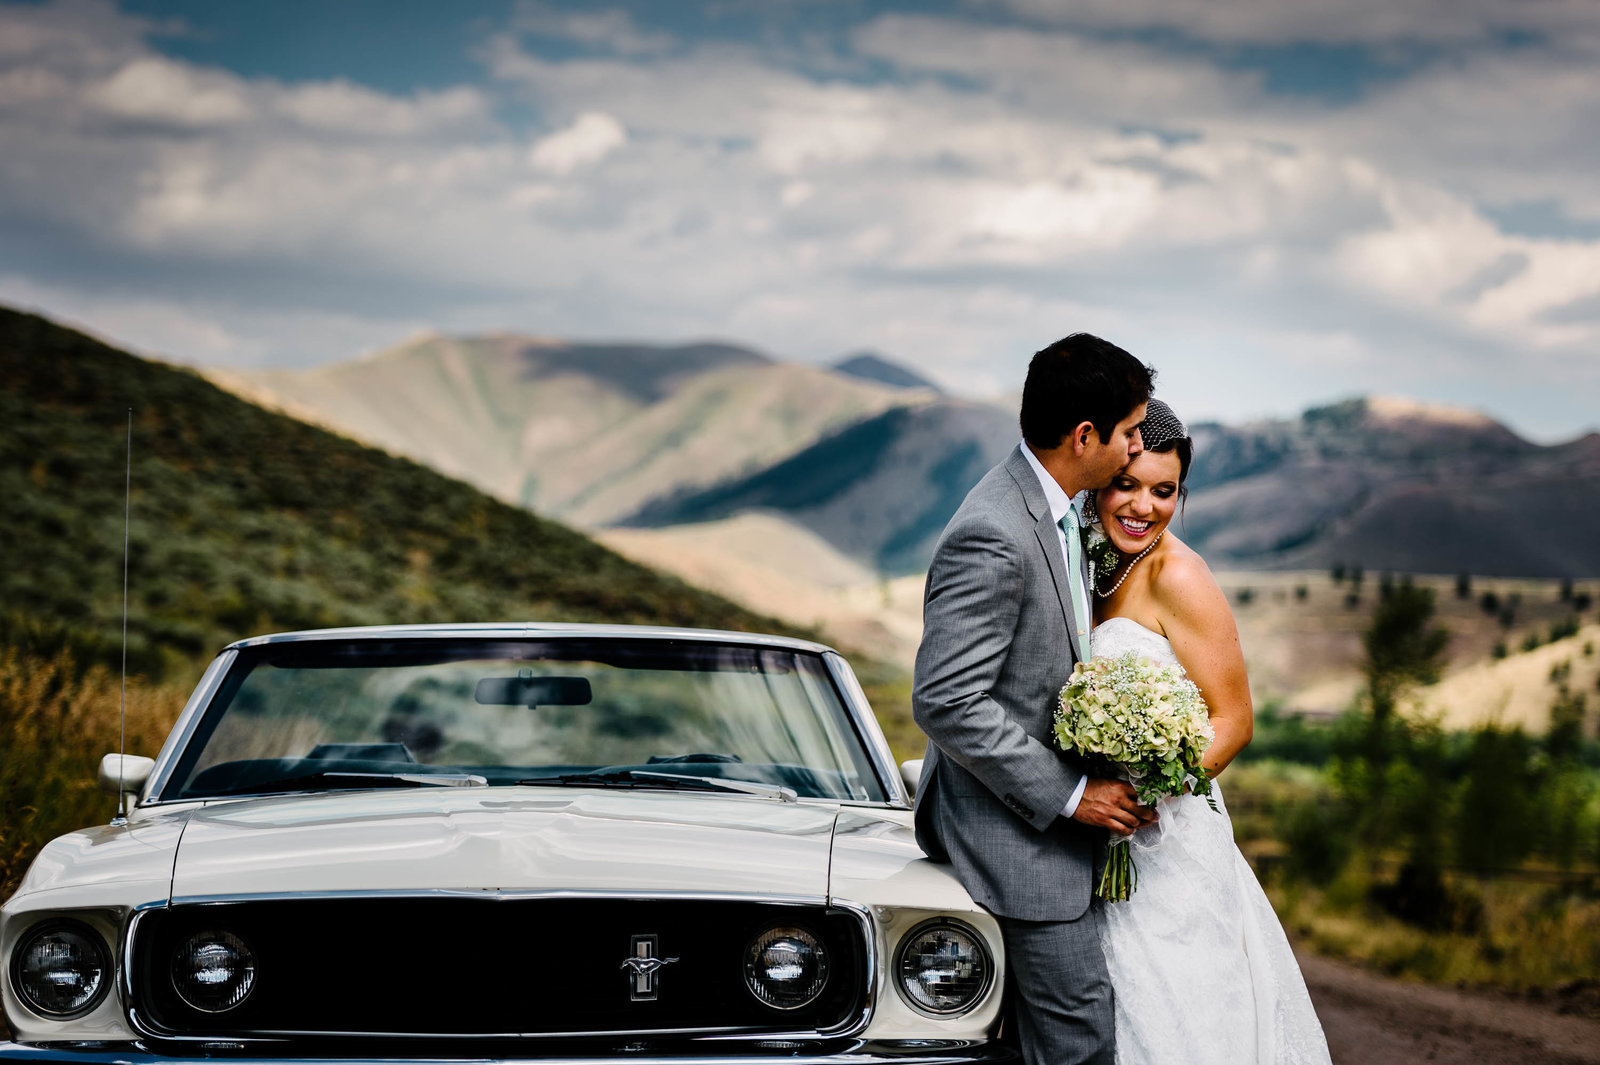 310-El-paso-wedding-photographer-KaCh_0345